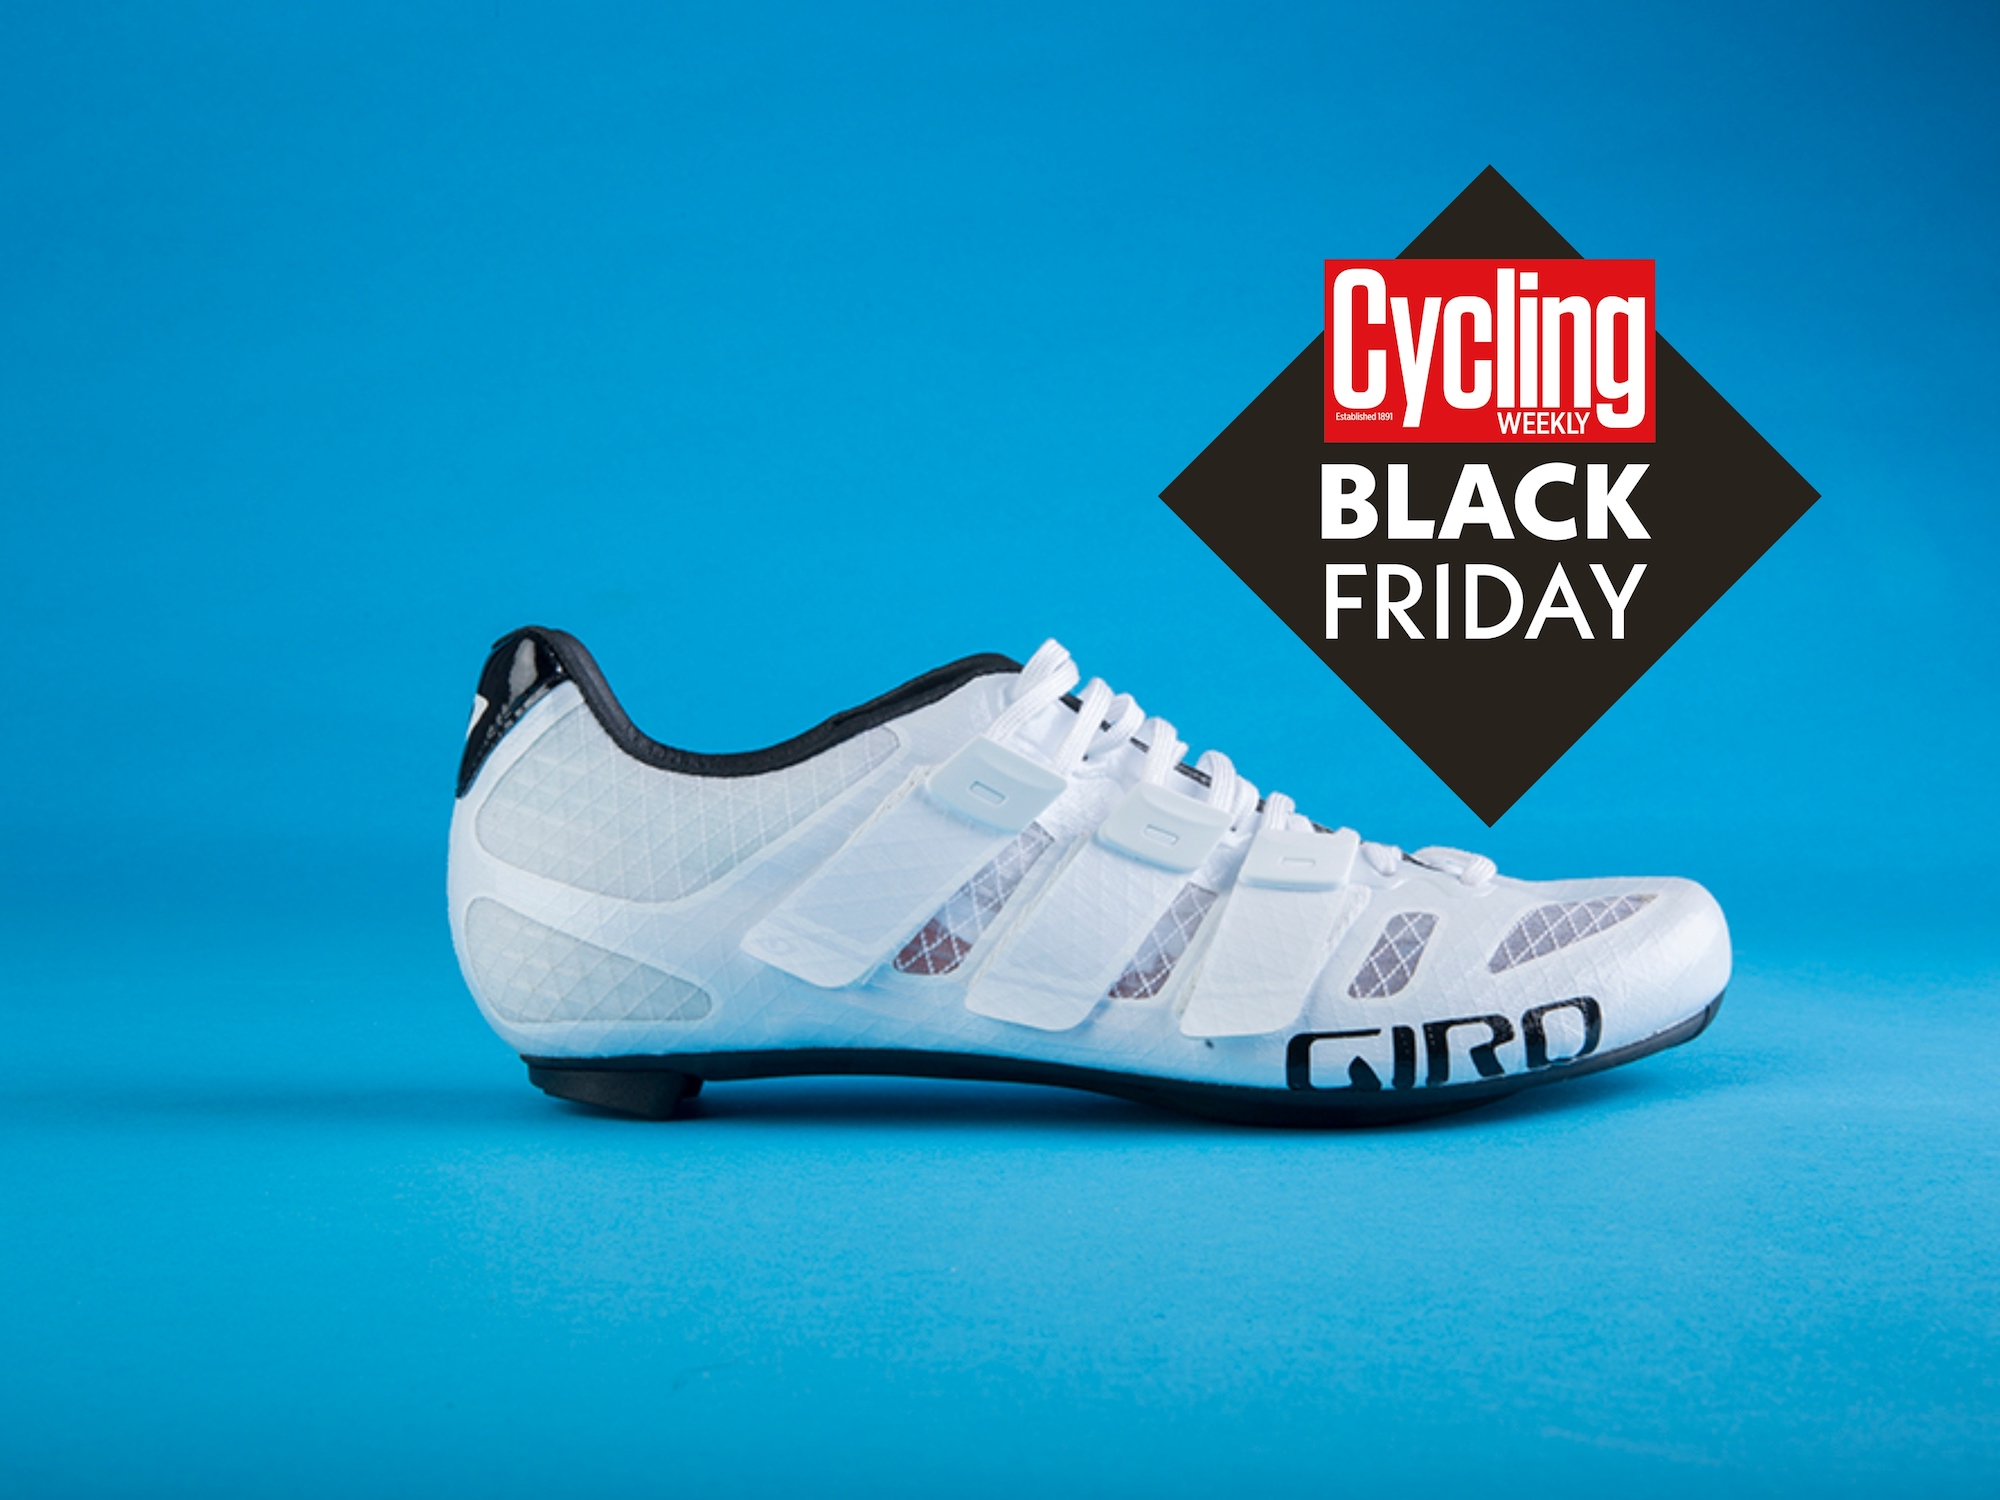 Big Black Friday Cycling Shoe Deals On Top Brands Giro Fizik Specialized And More Cycling Weekly